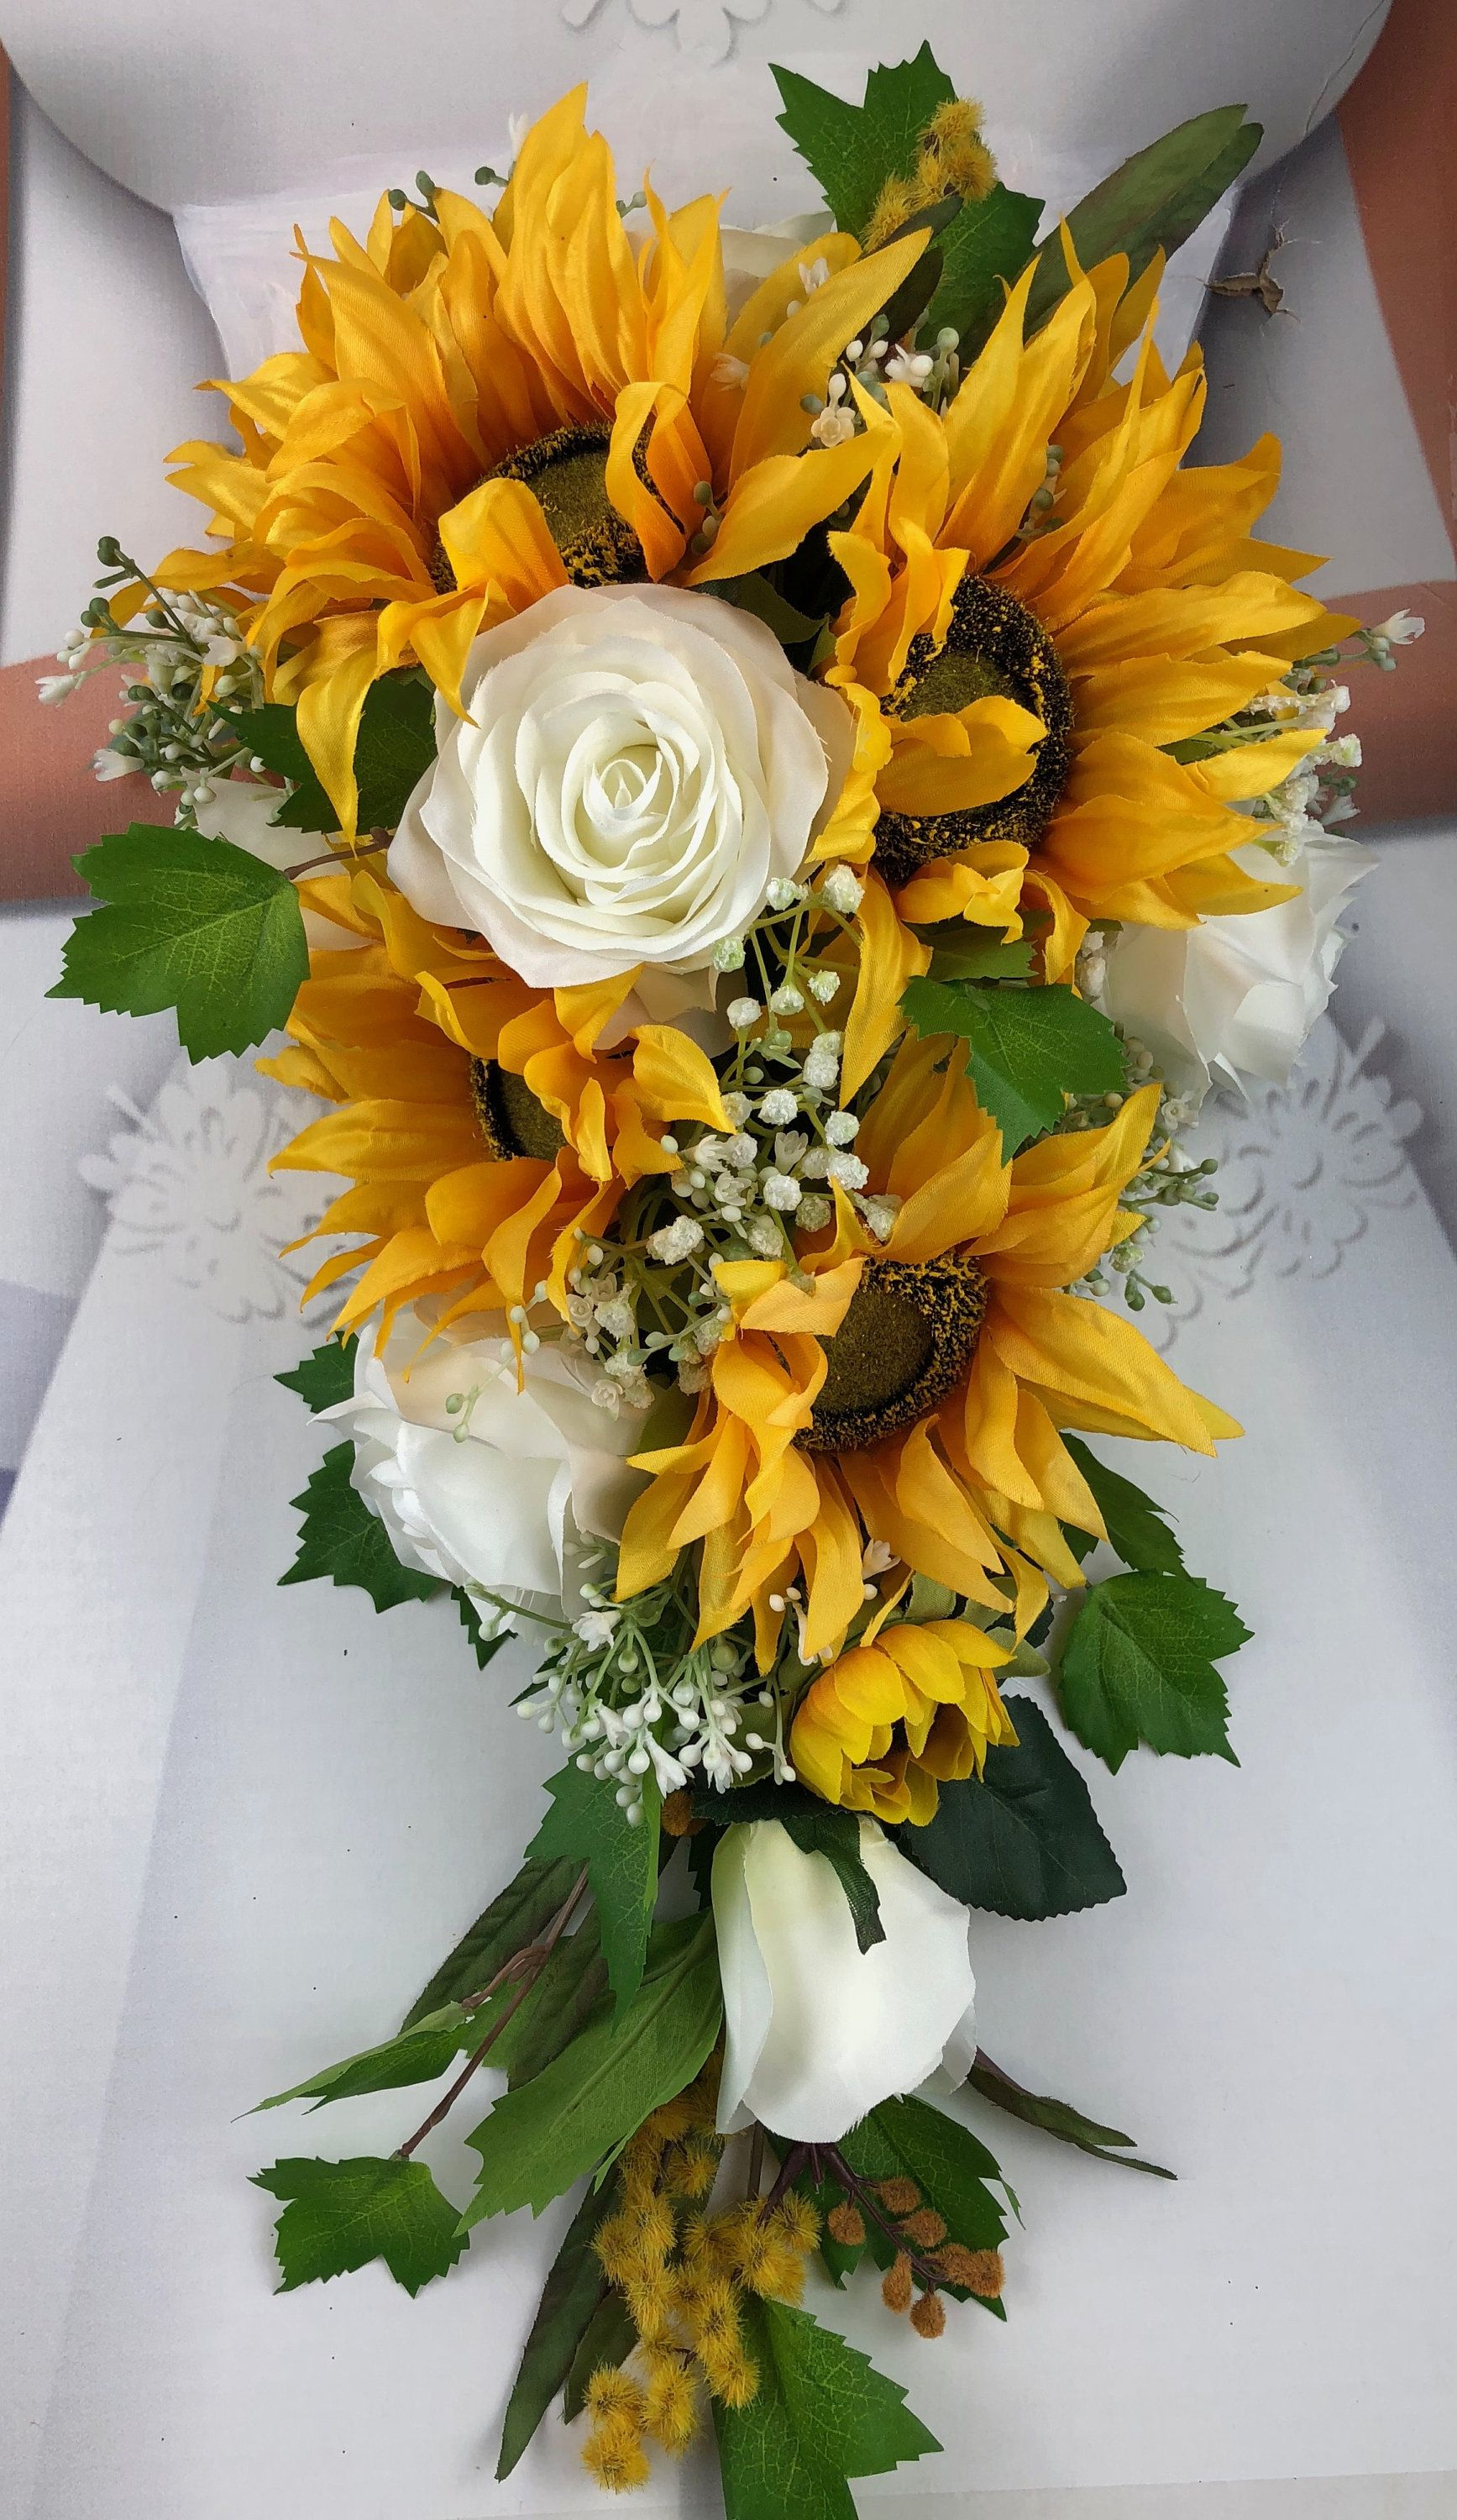 How To Make A Cascading Sunflower Bridal Bouquet Google Search Sunflower Bridal Bouquet Wedding Flowers Sunflowers Sunflower Wedding